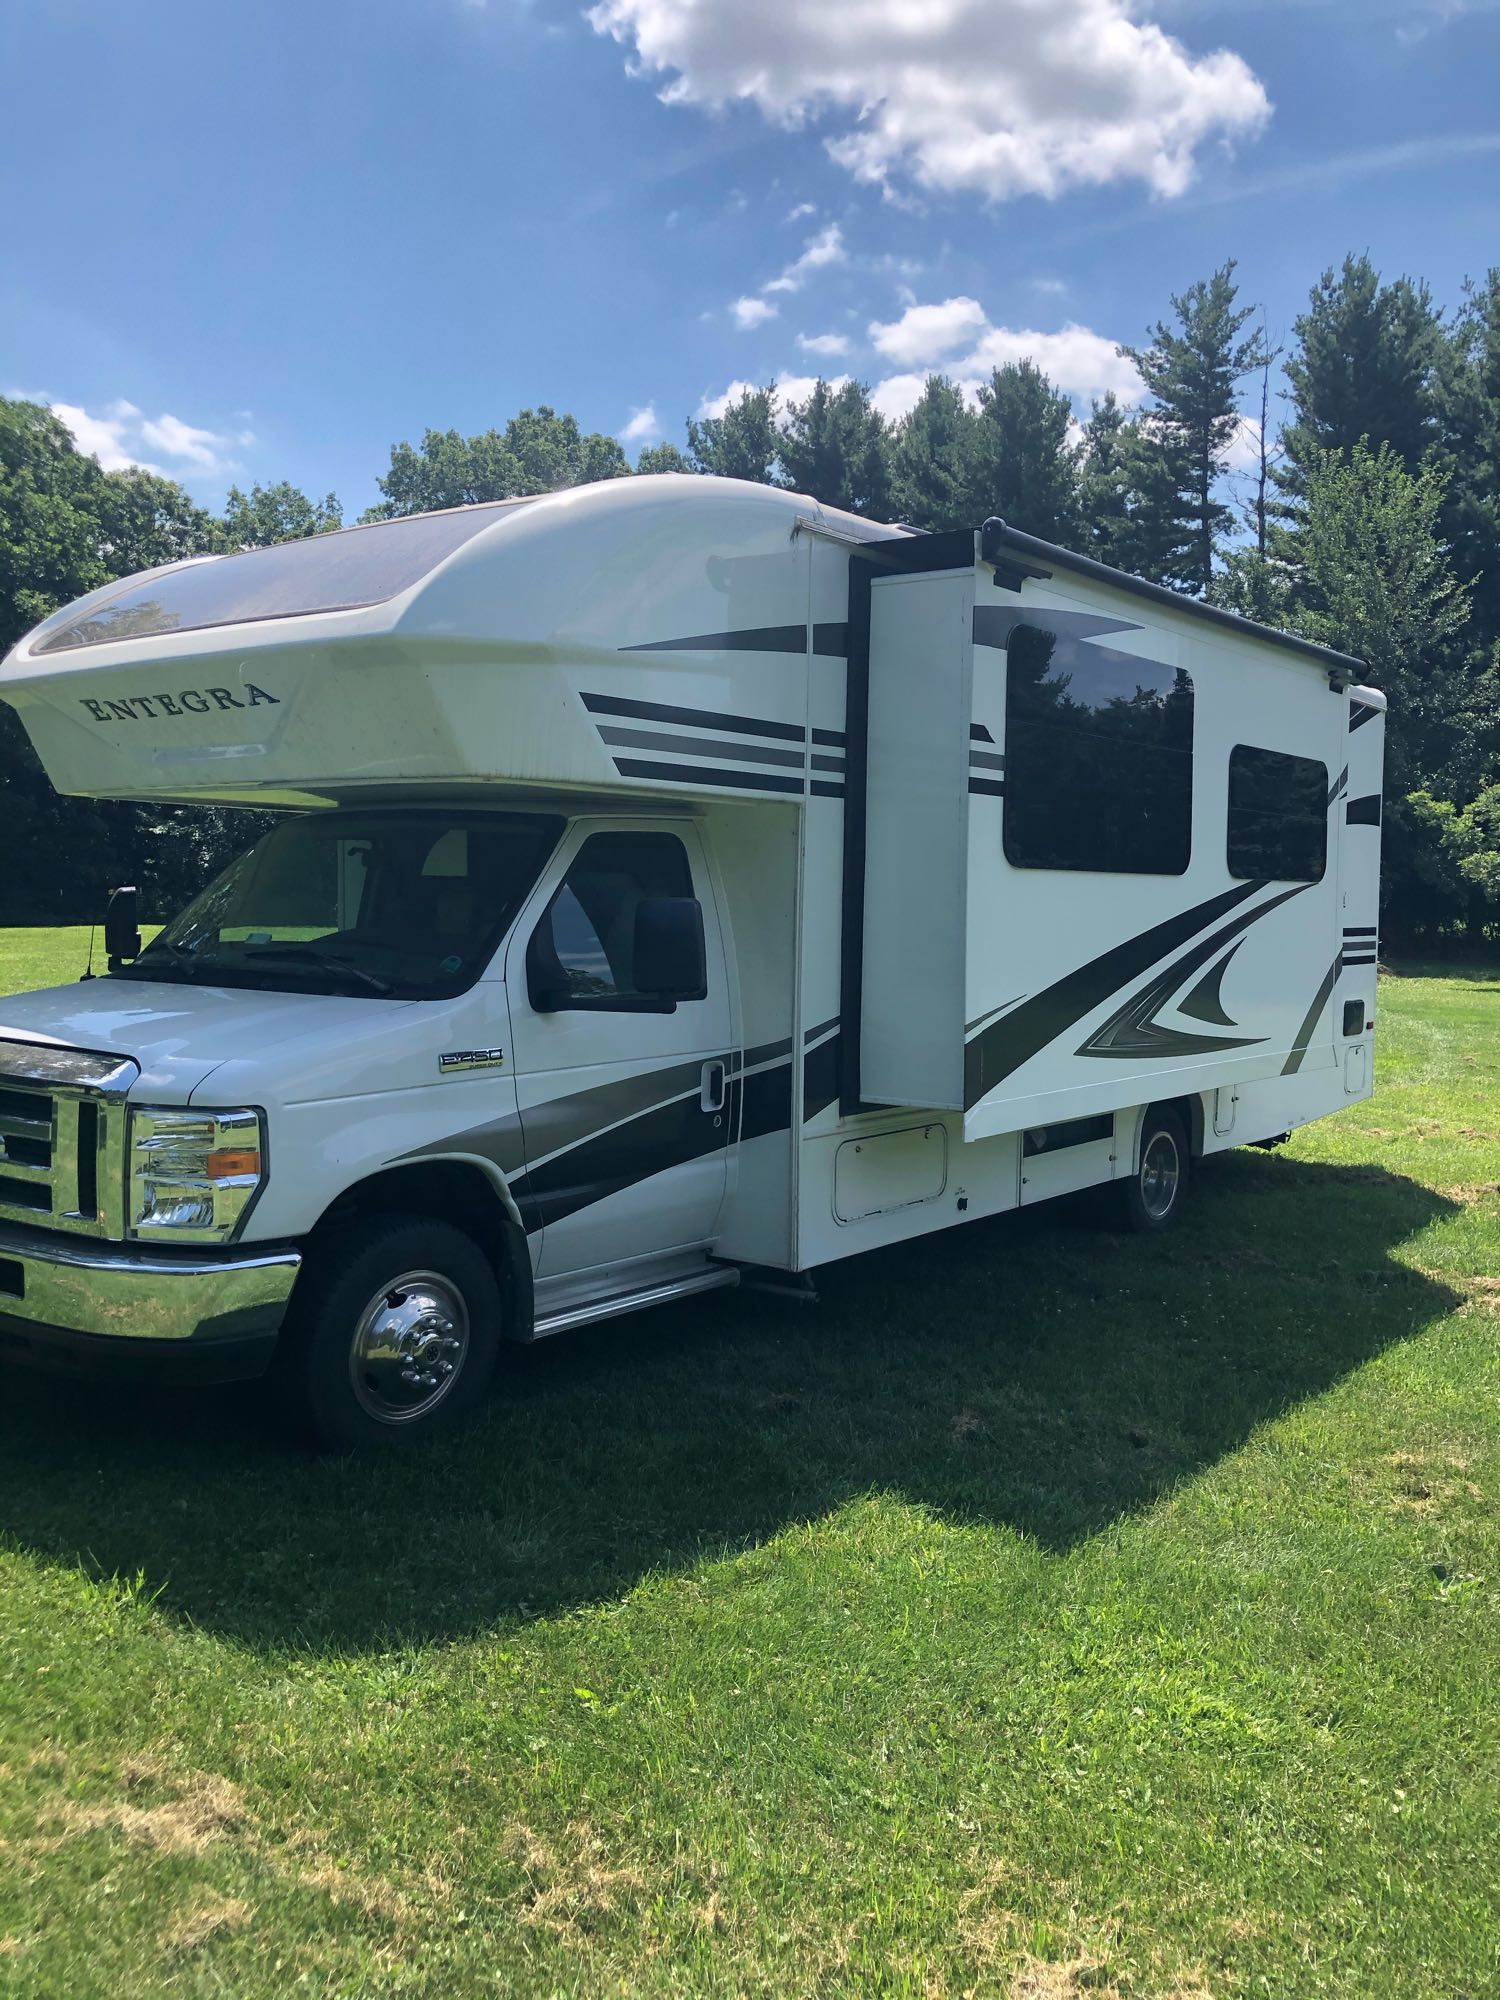 Main room slide outs creates very spacious living. Entegra Coach Other 2019